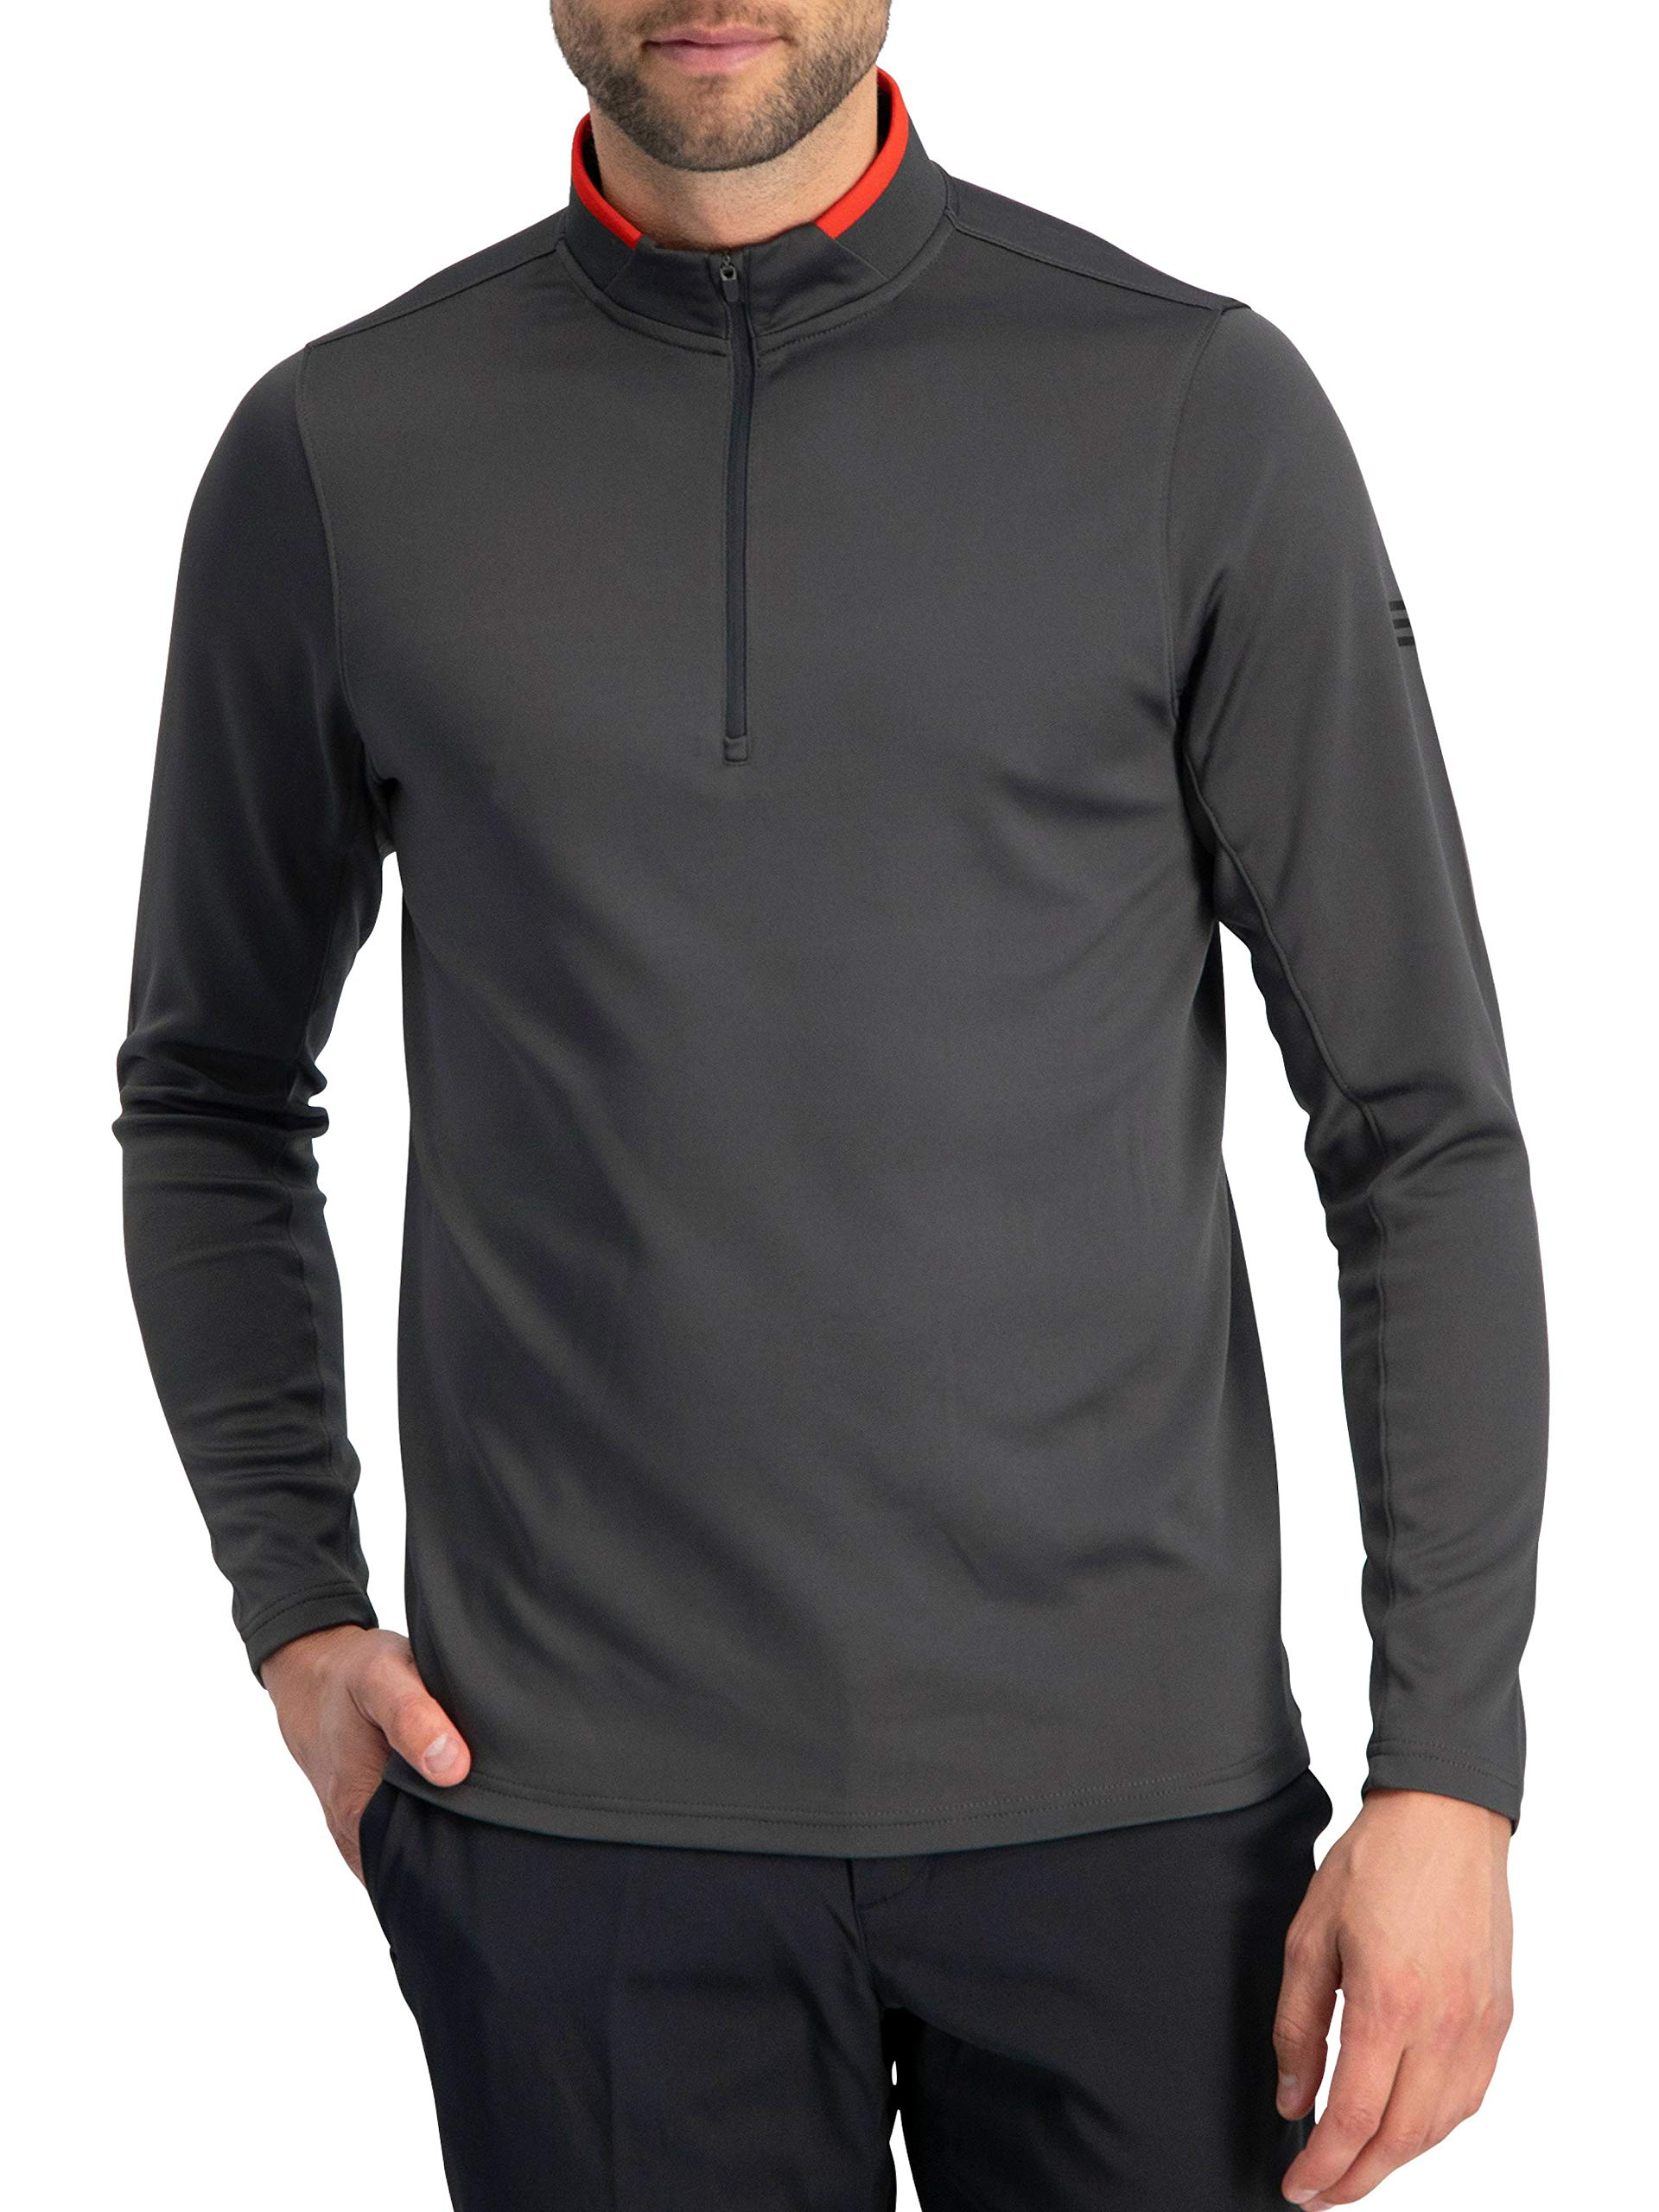 Golf Half Zip Pullover Men - Fleece Sweater Jacket - Mens Dry Fit Golf Shirts Charcoal Grey by Three Sixty Six